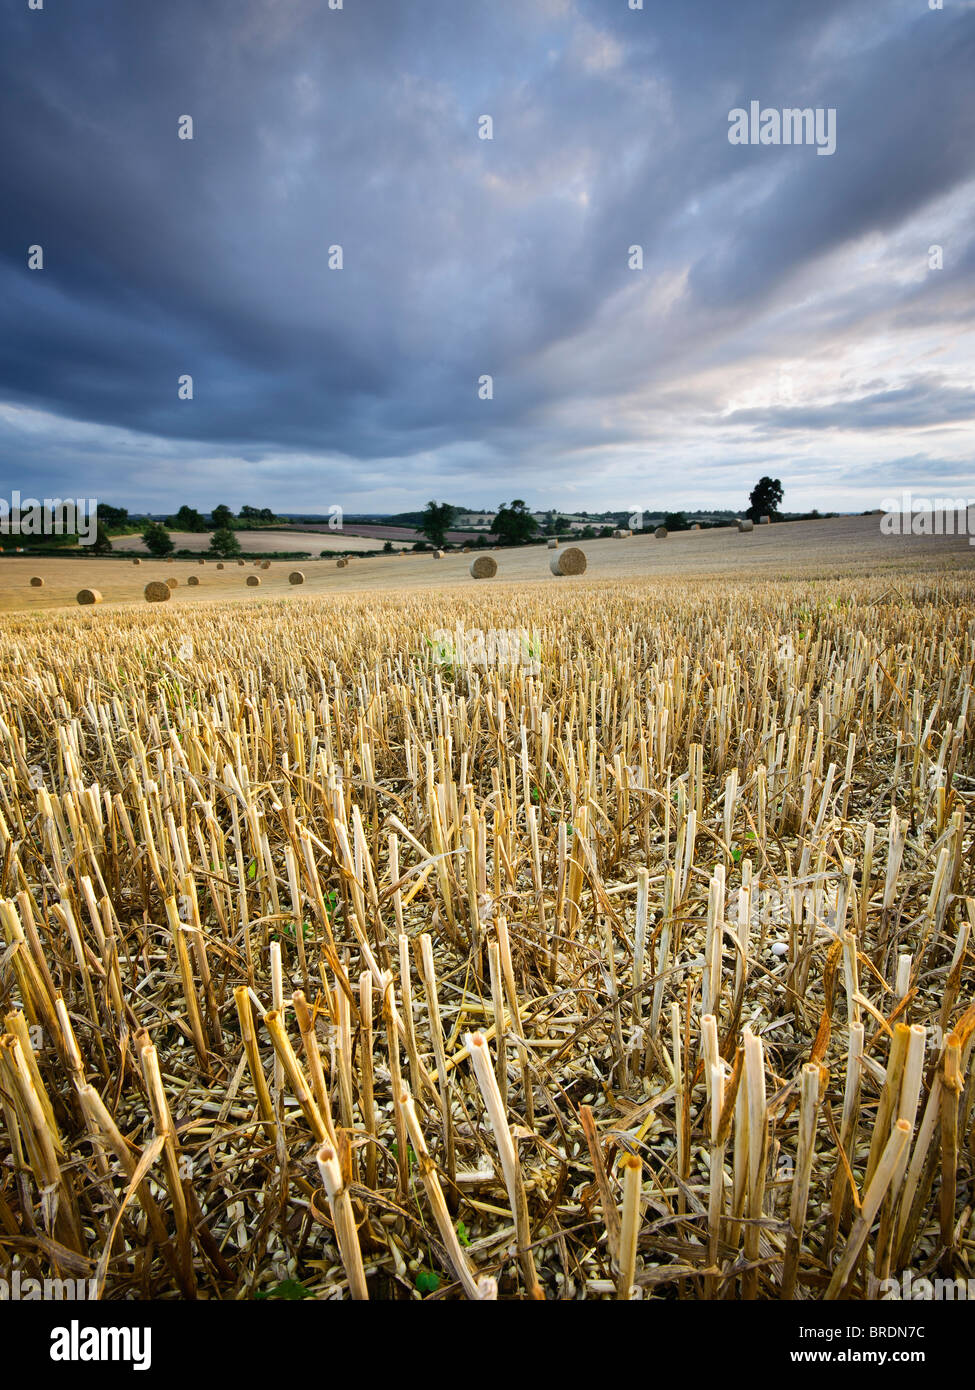 Hay bails and stubble in a field at sunset, Warwickshire, England, UK - Stock Image